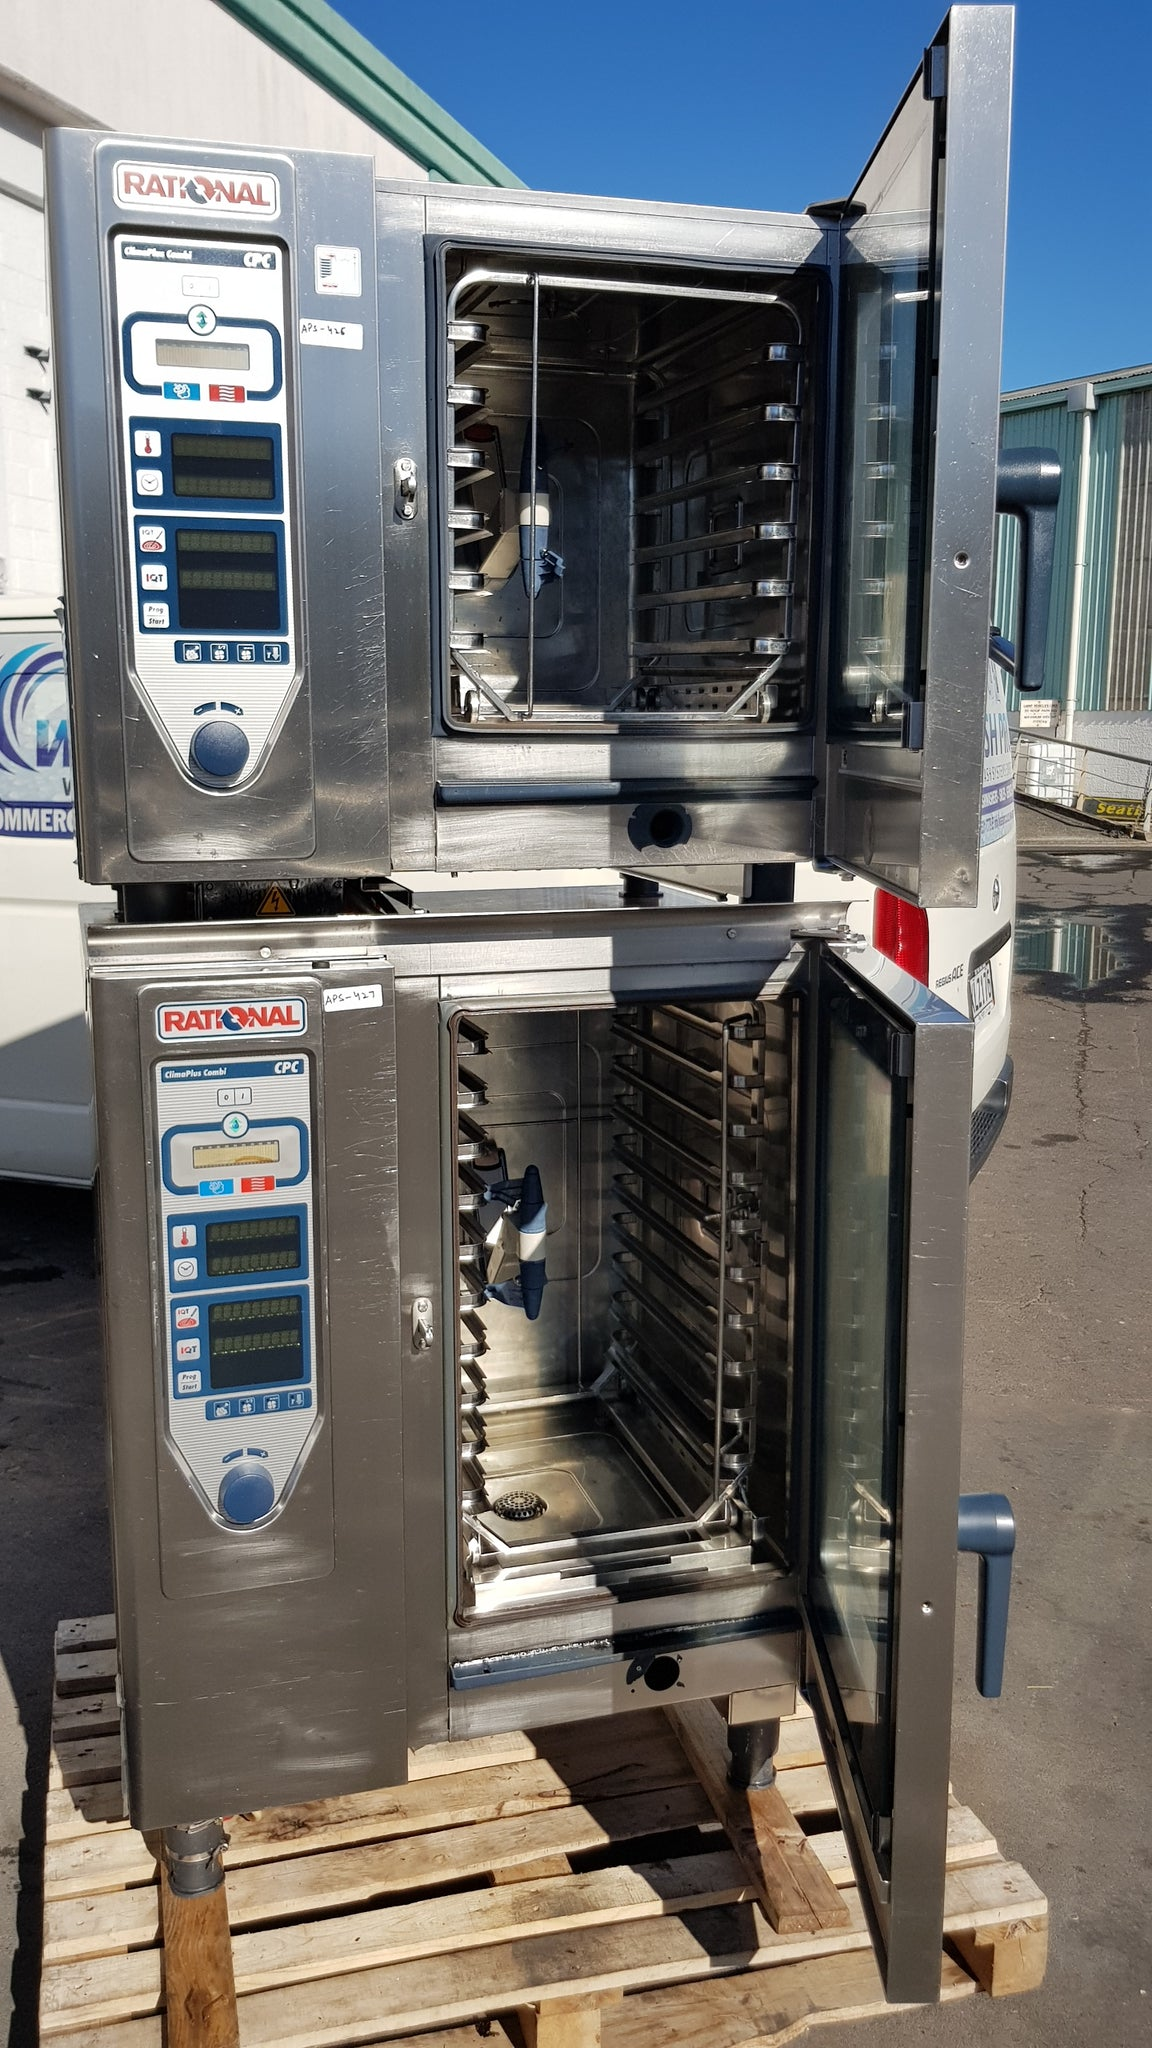 APS426, APS427 Rational CPC 61 Electric Combi oven 6 tray and CPC 101 Electric Combi oven 10 tray - Washpro